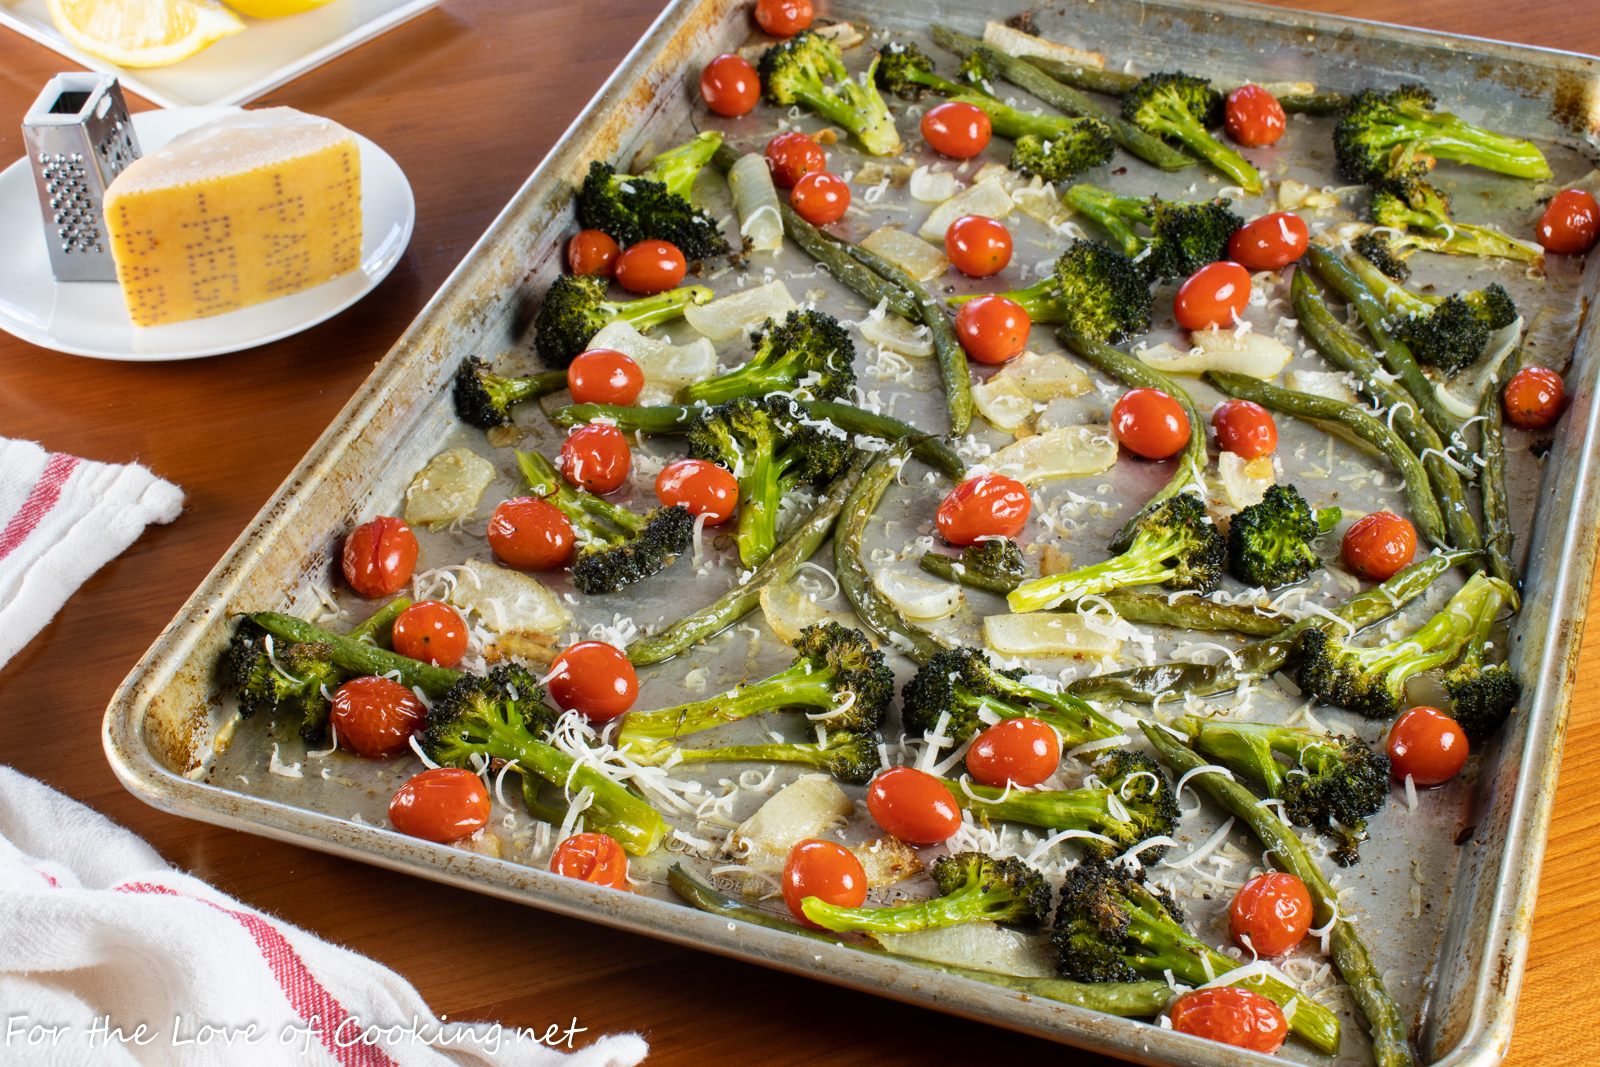 Sheet Pan Roasted Broccoli, Green Beans, and Tomatoes with Lemon and Parmesan